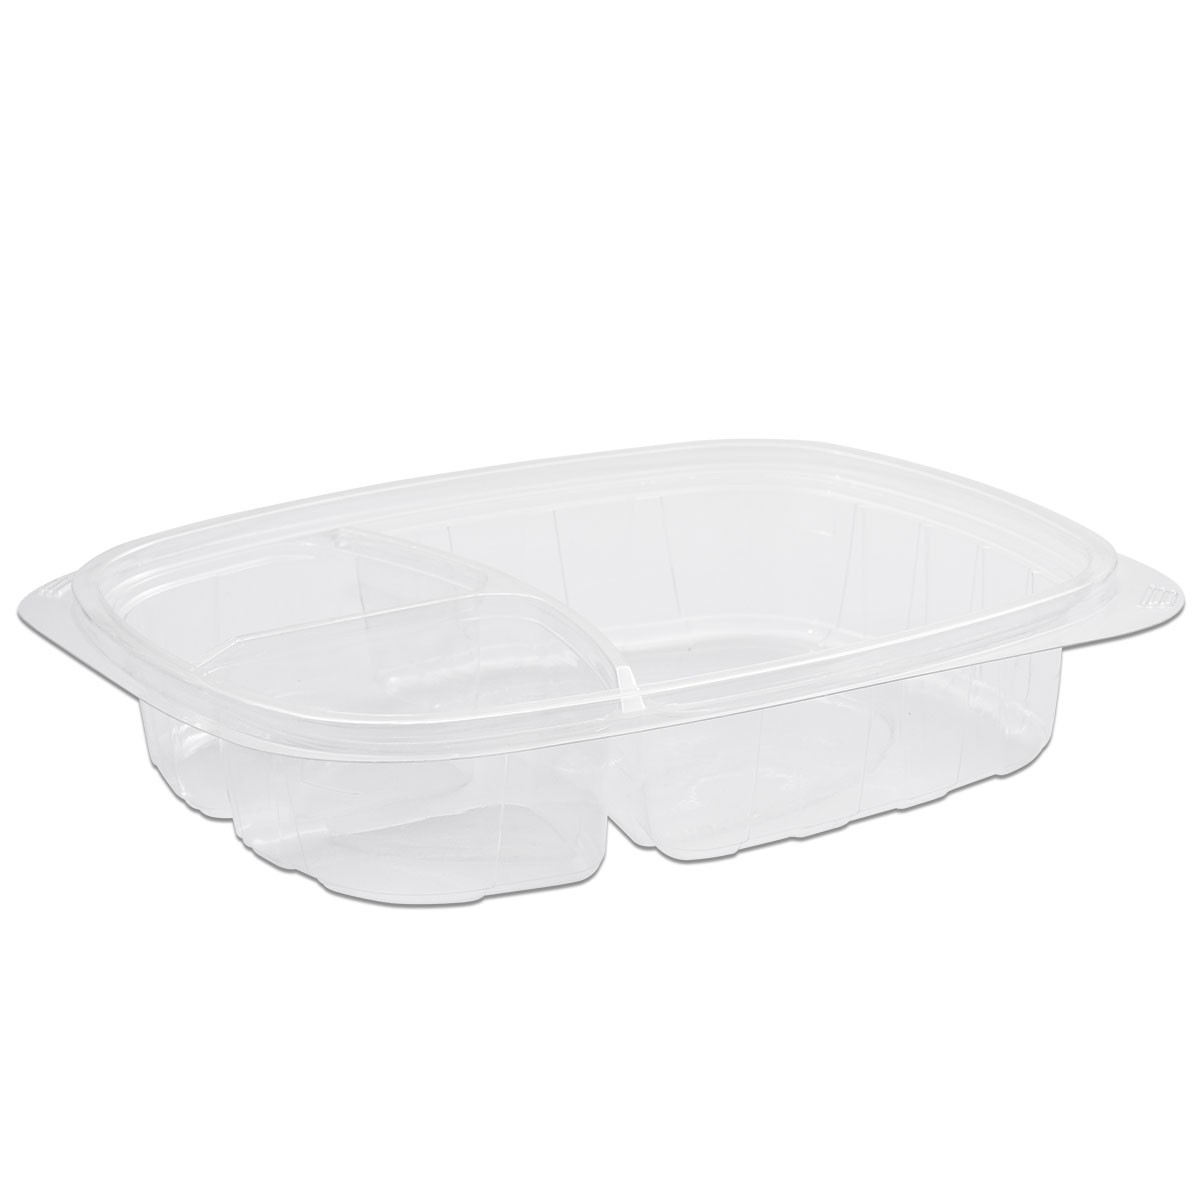 Tutipac 3-Comp Clear Hot Multipurpose Containers PP | 250pcs